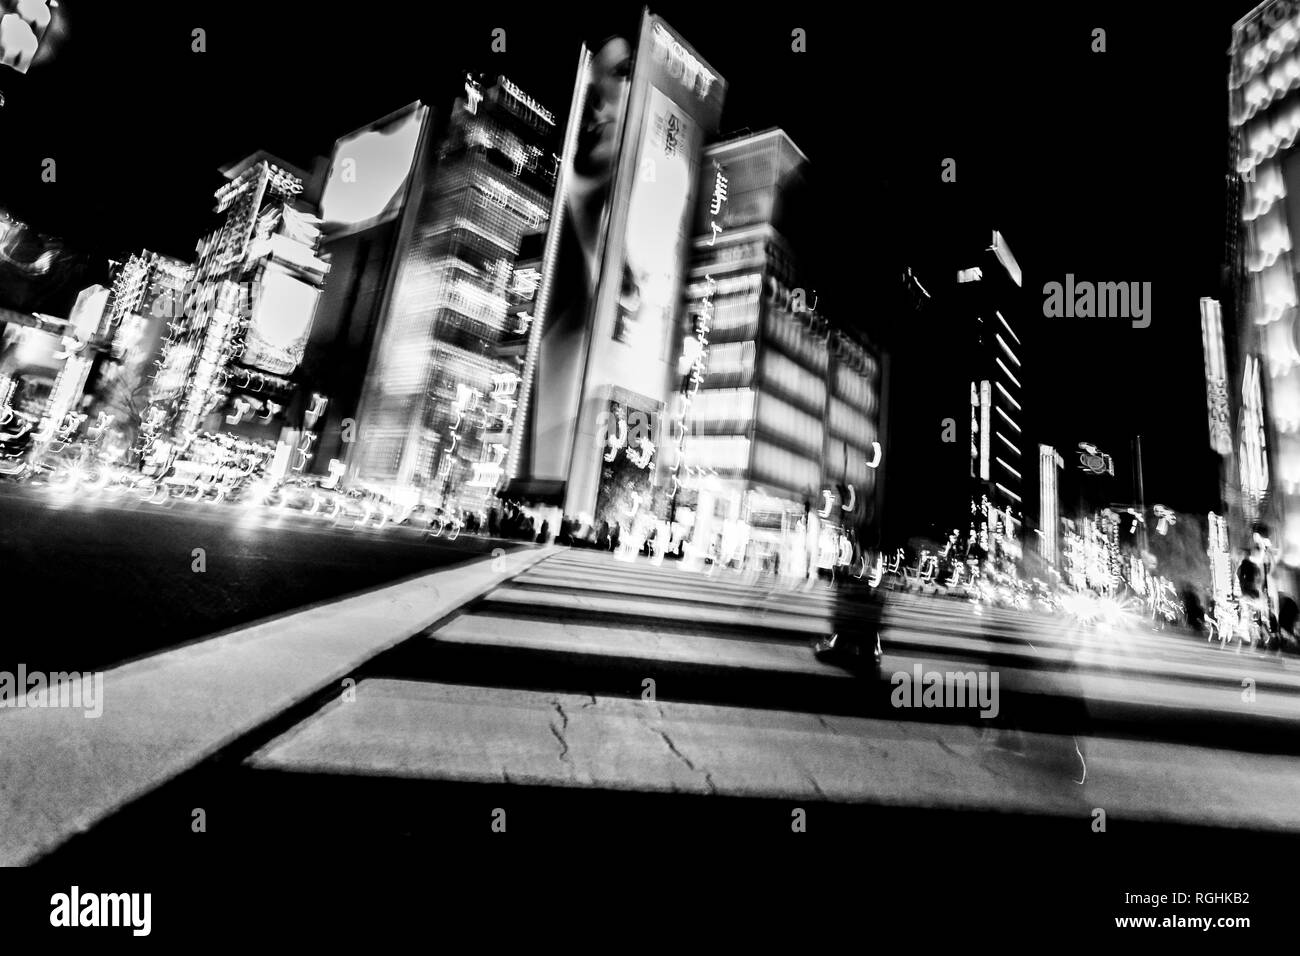 Pedestrians cross the street at the heart of Ginza District in Tokyo. Ginza crossing at night. Blurred motion, black and white image. Stock Photo